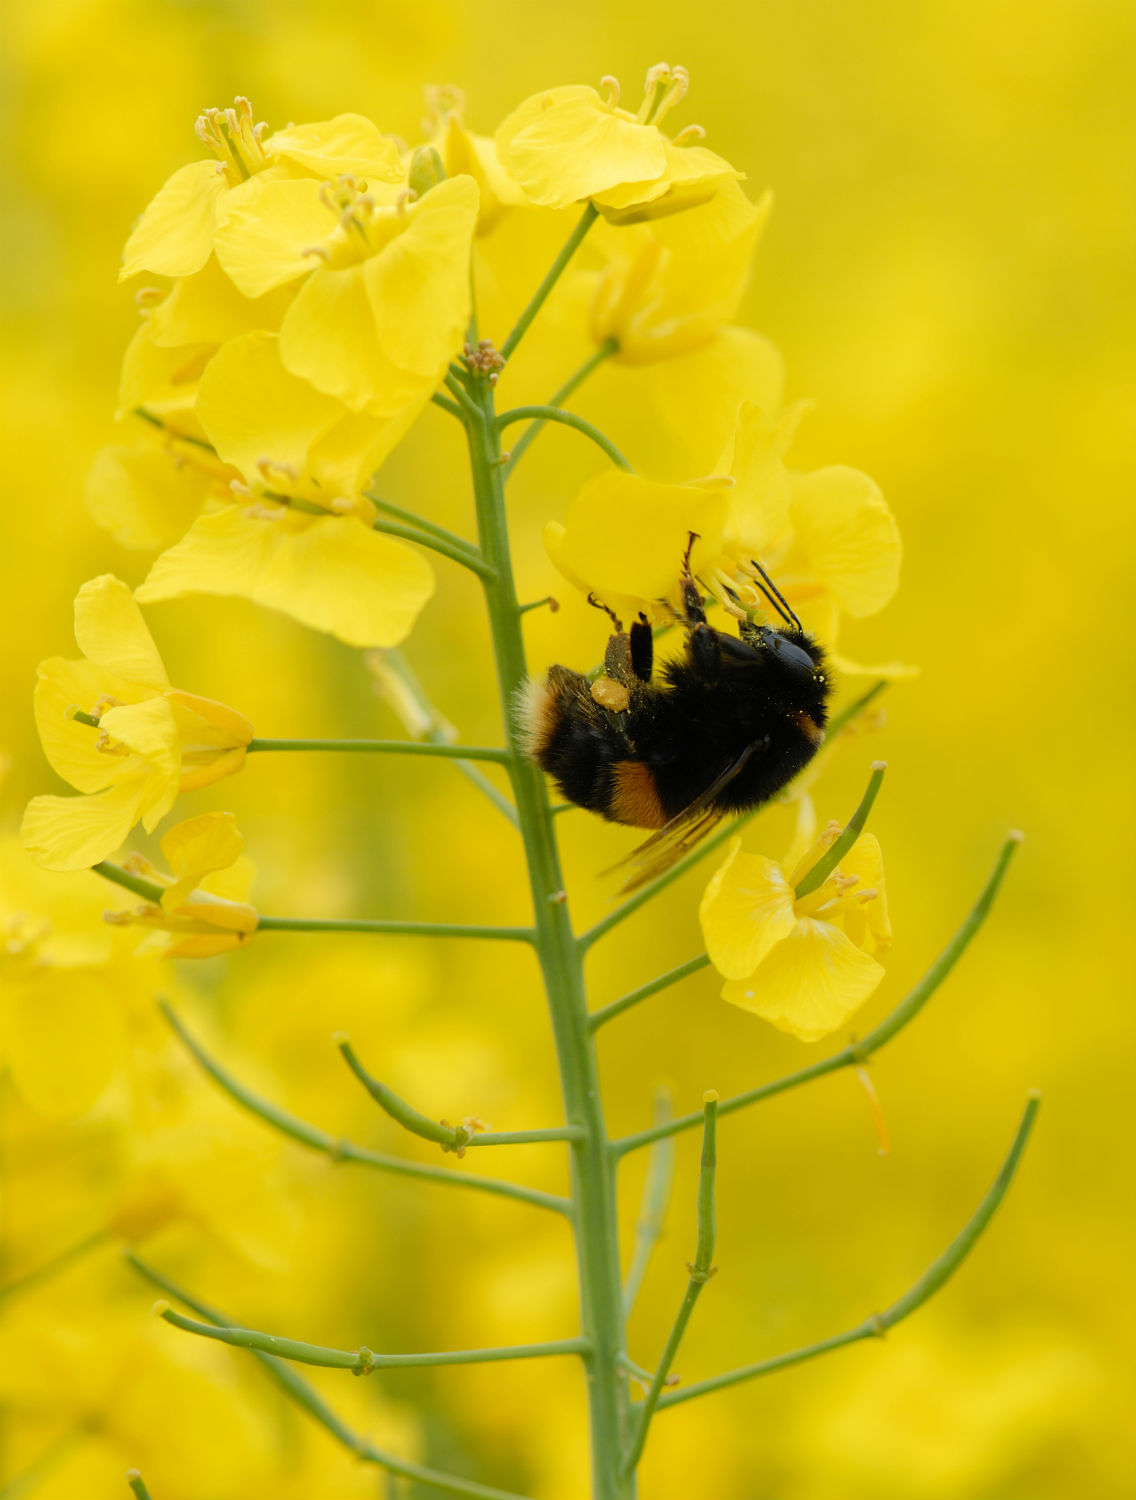 Bee on oilseed rape best practice to protect bees